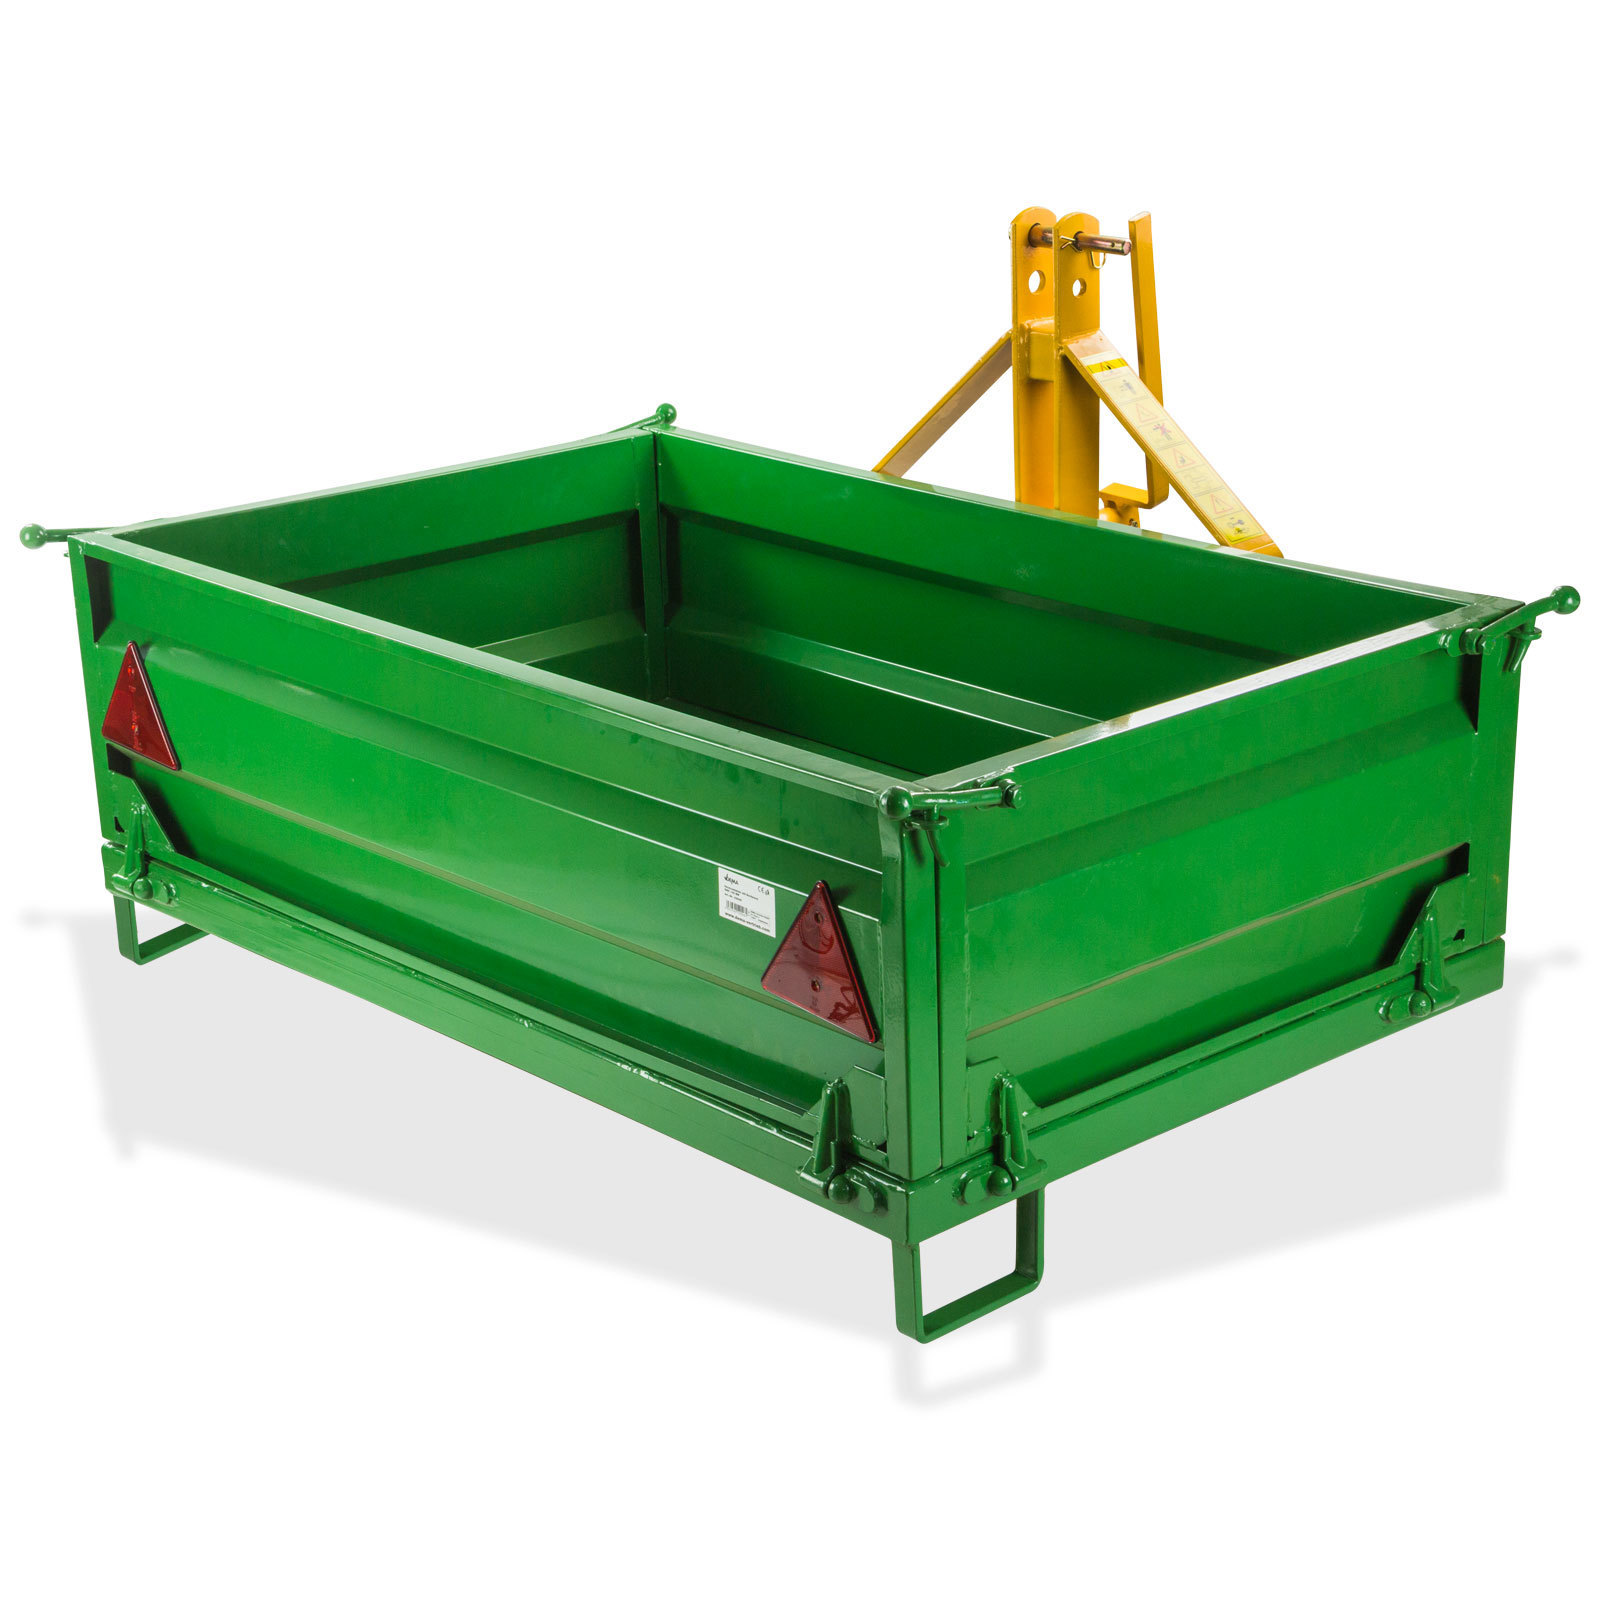 Traktor Heckcontainer Container Mulde Heckmulde mit Bordwand abnehmbar 500 kg